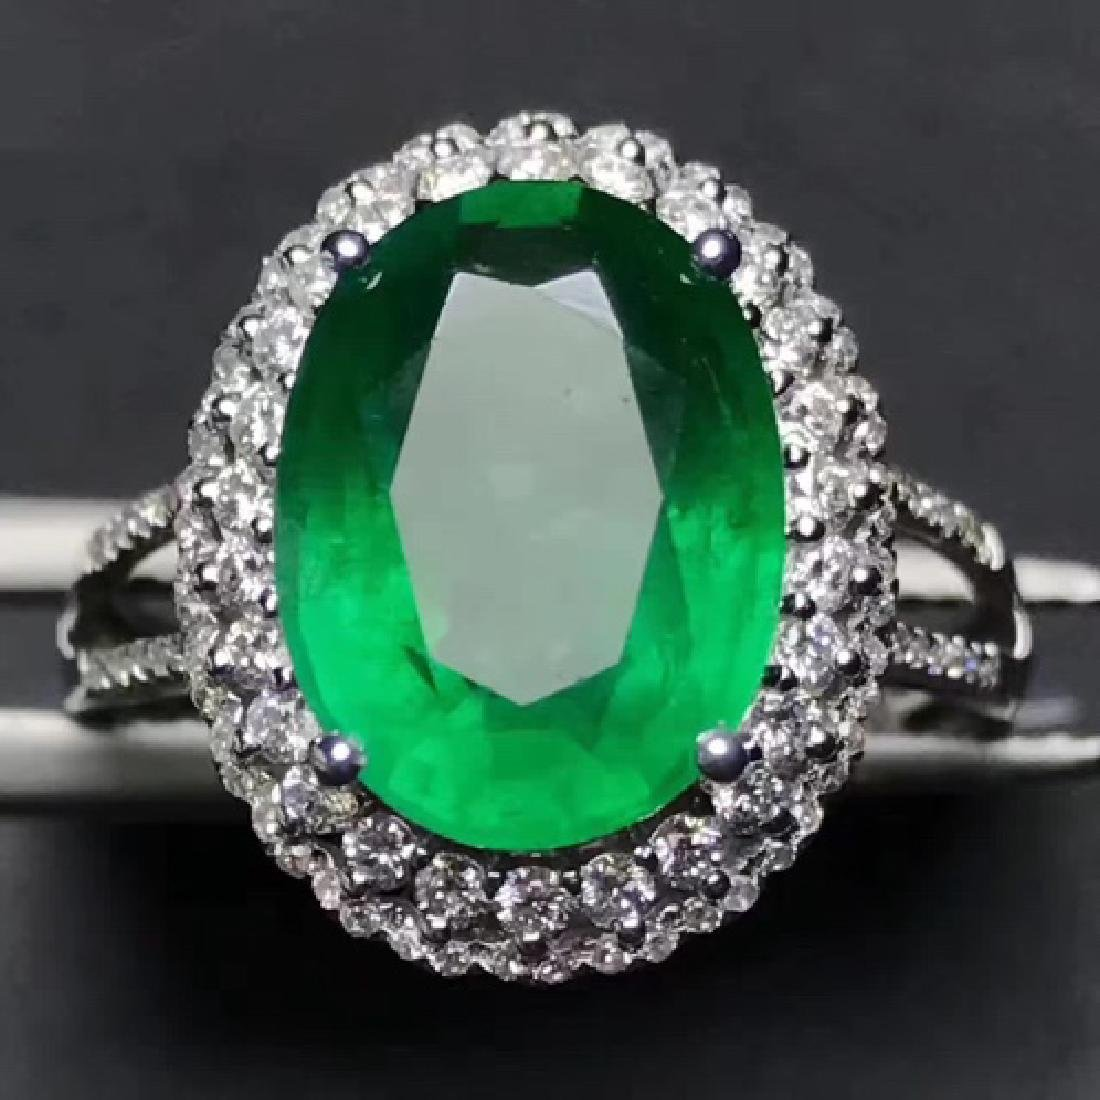 COLOMBIA EMERALD RING